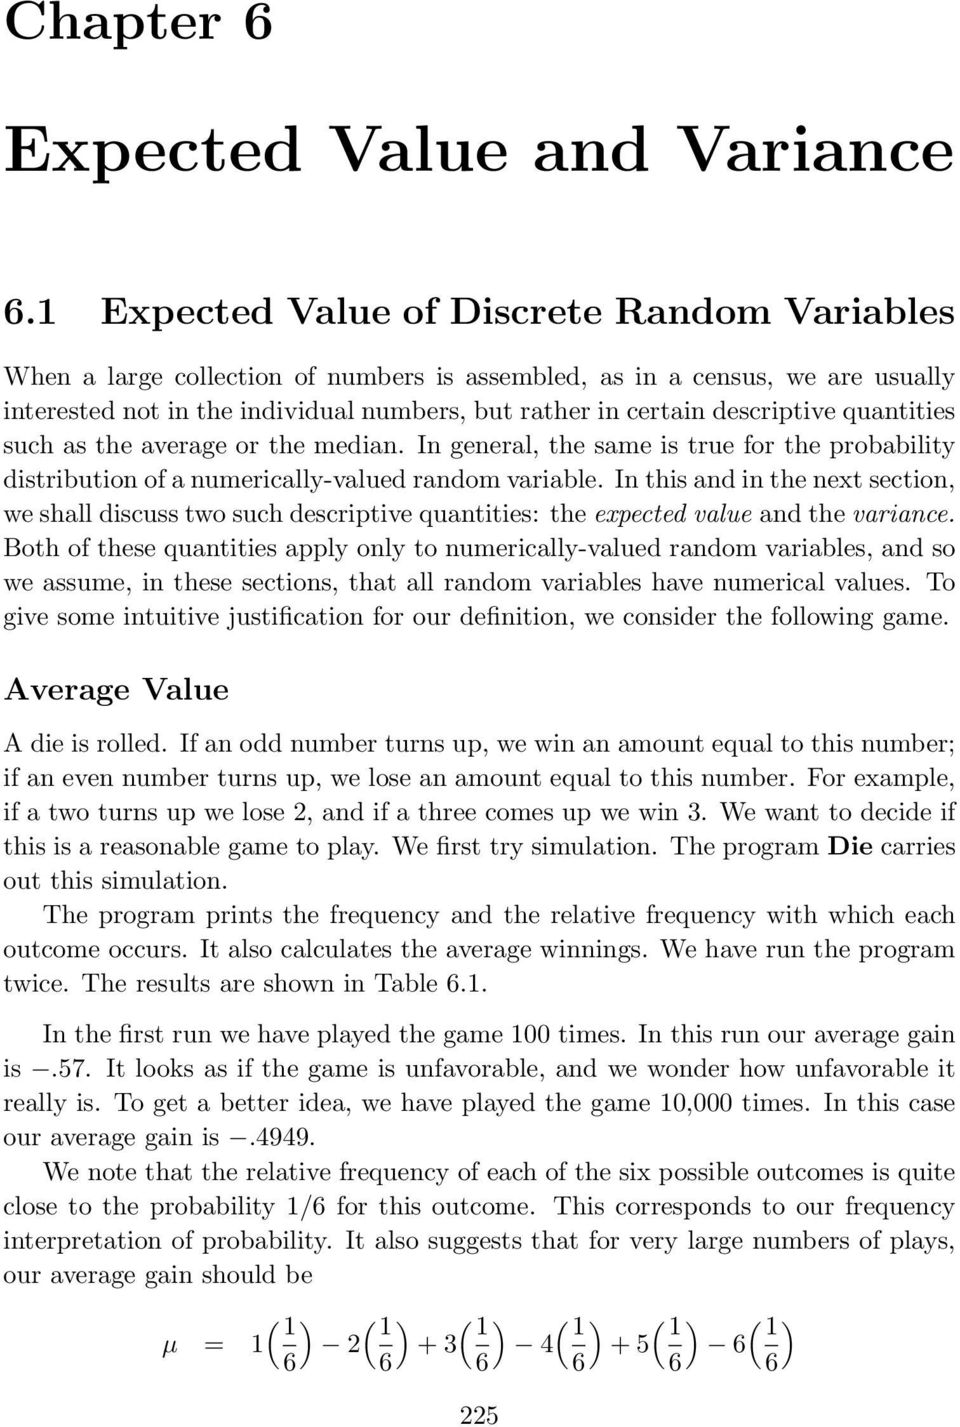 descriptive quantities such as the average or the median. In general, the same is true for the probability distribution of a numerically-valued random variable.